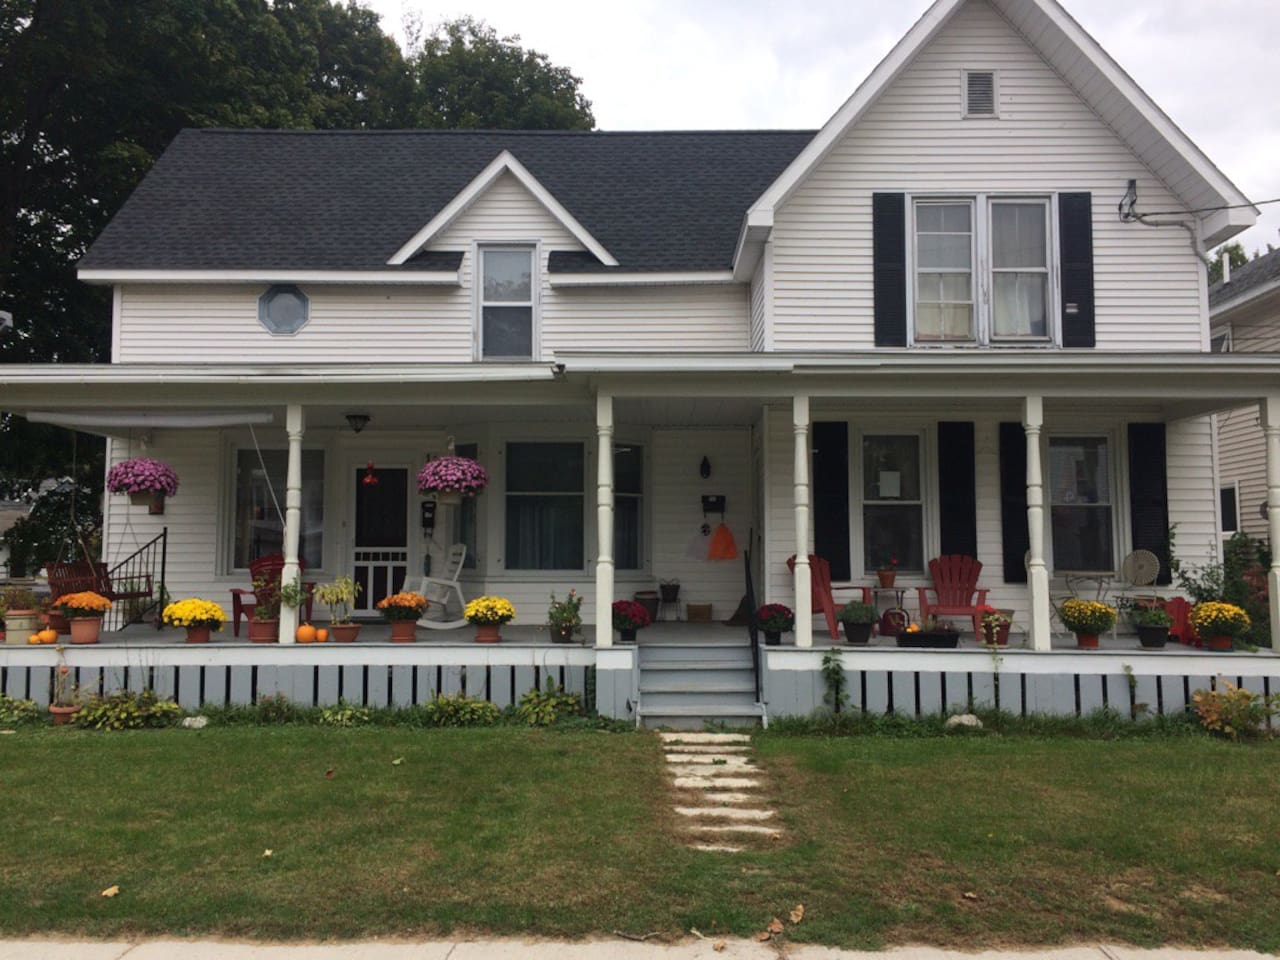 The large front porch is a comfortable place to enjoy the evenings. This is a two unit house and ours is the one on the right.